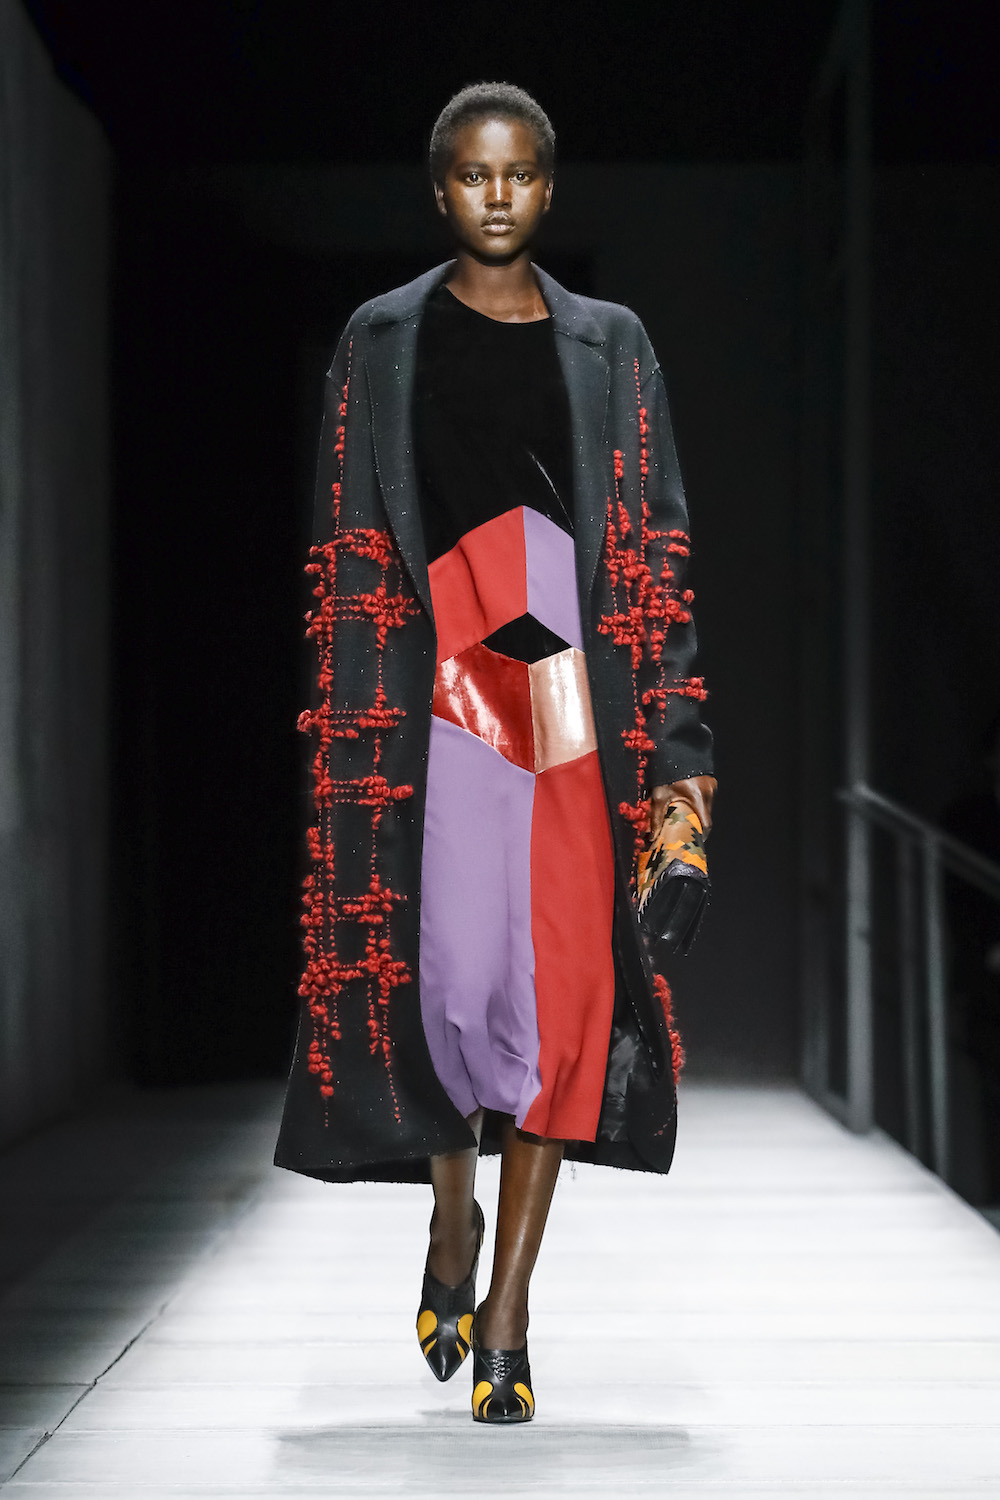 Bottega Veneta Does Diversity on Its Fall Runway in More Ways than One